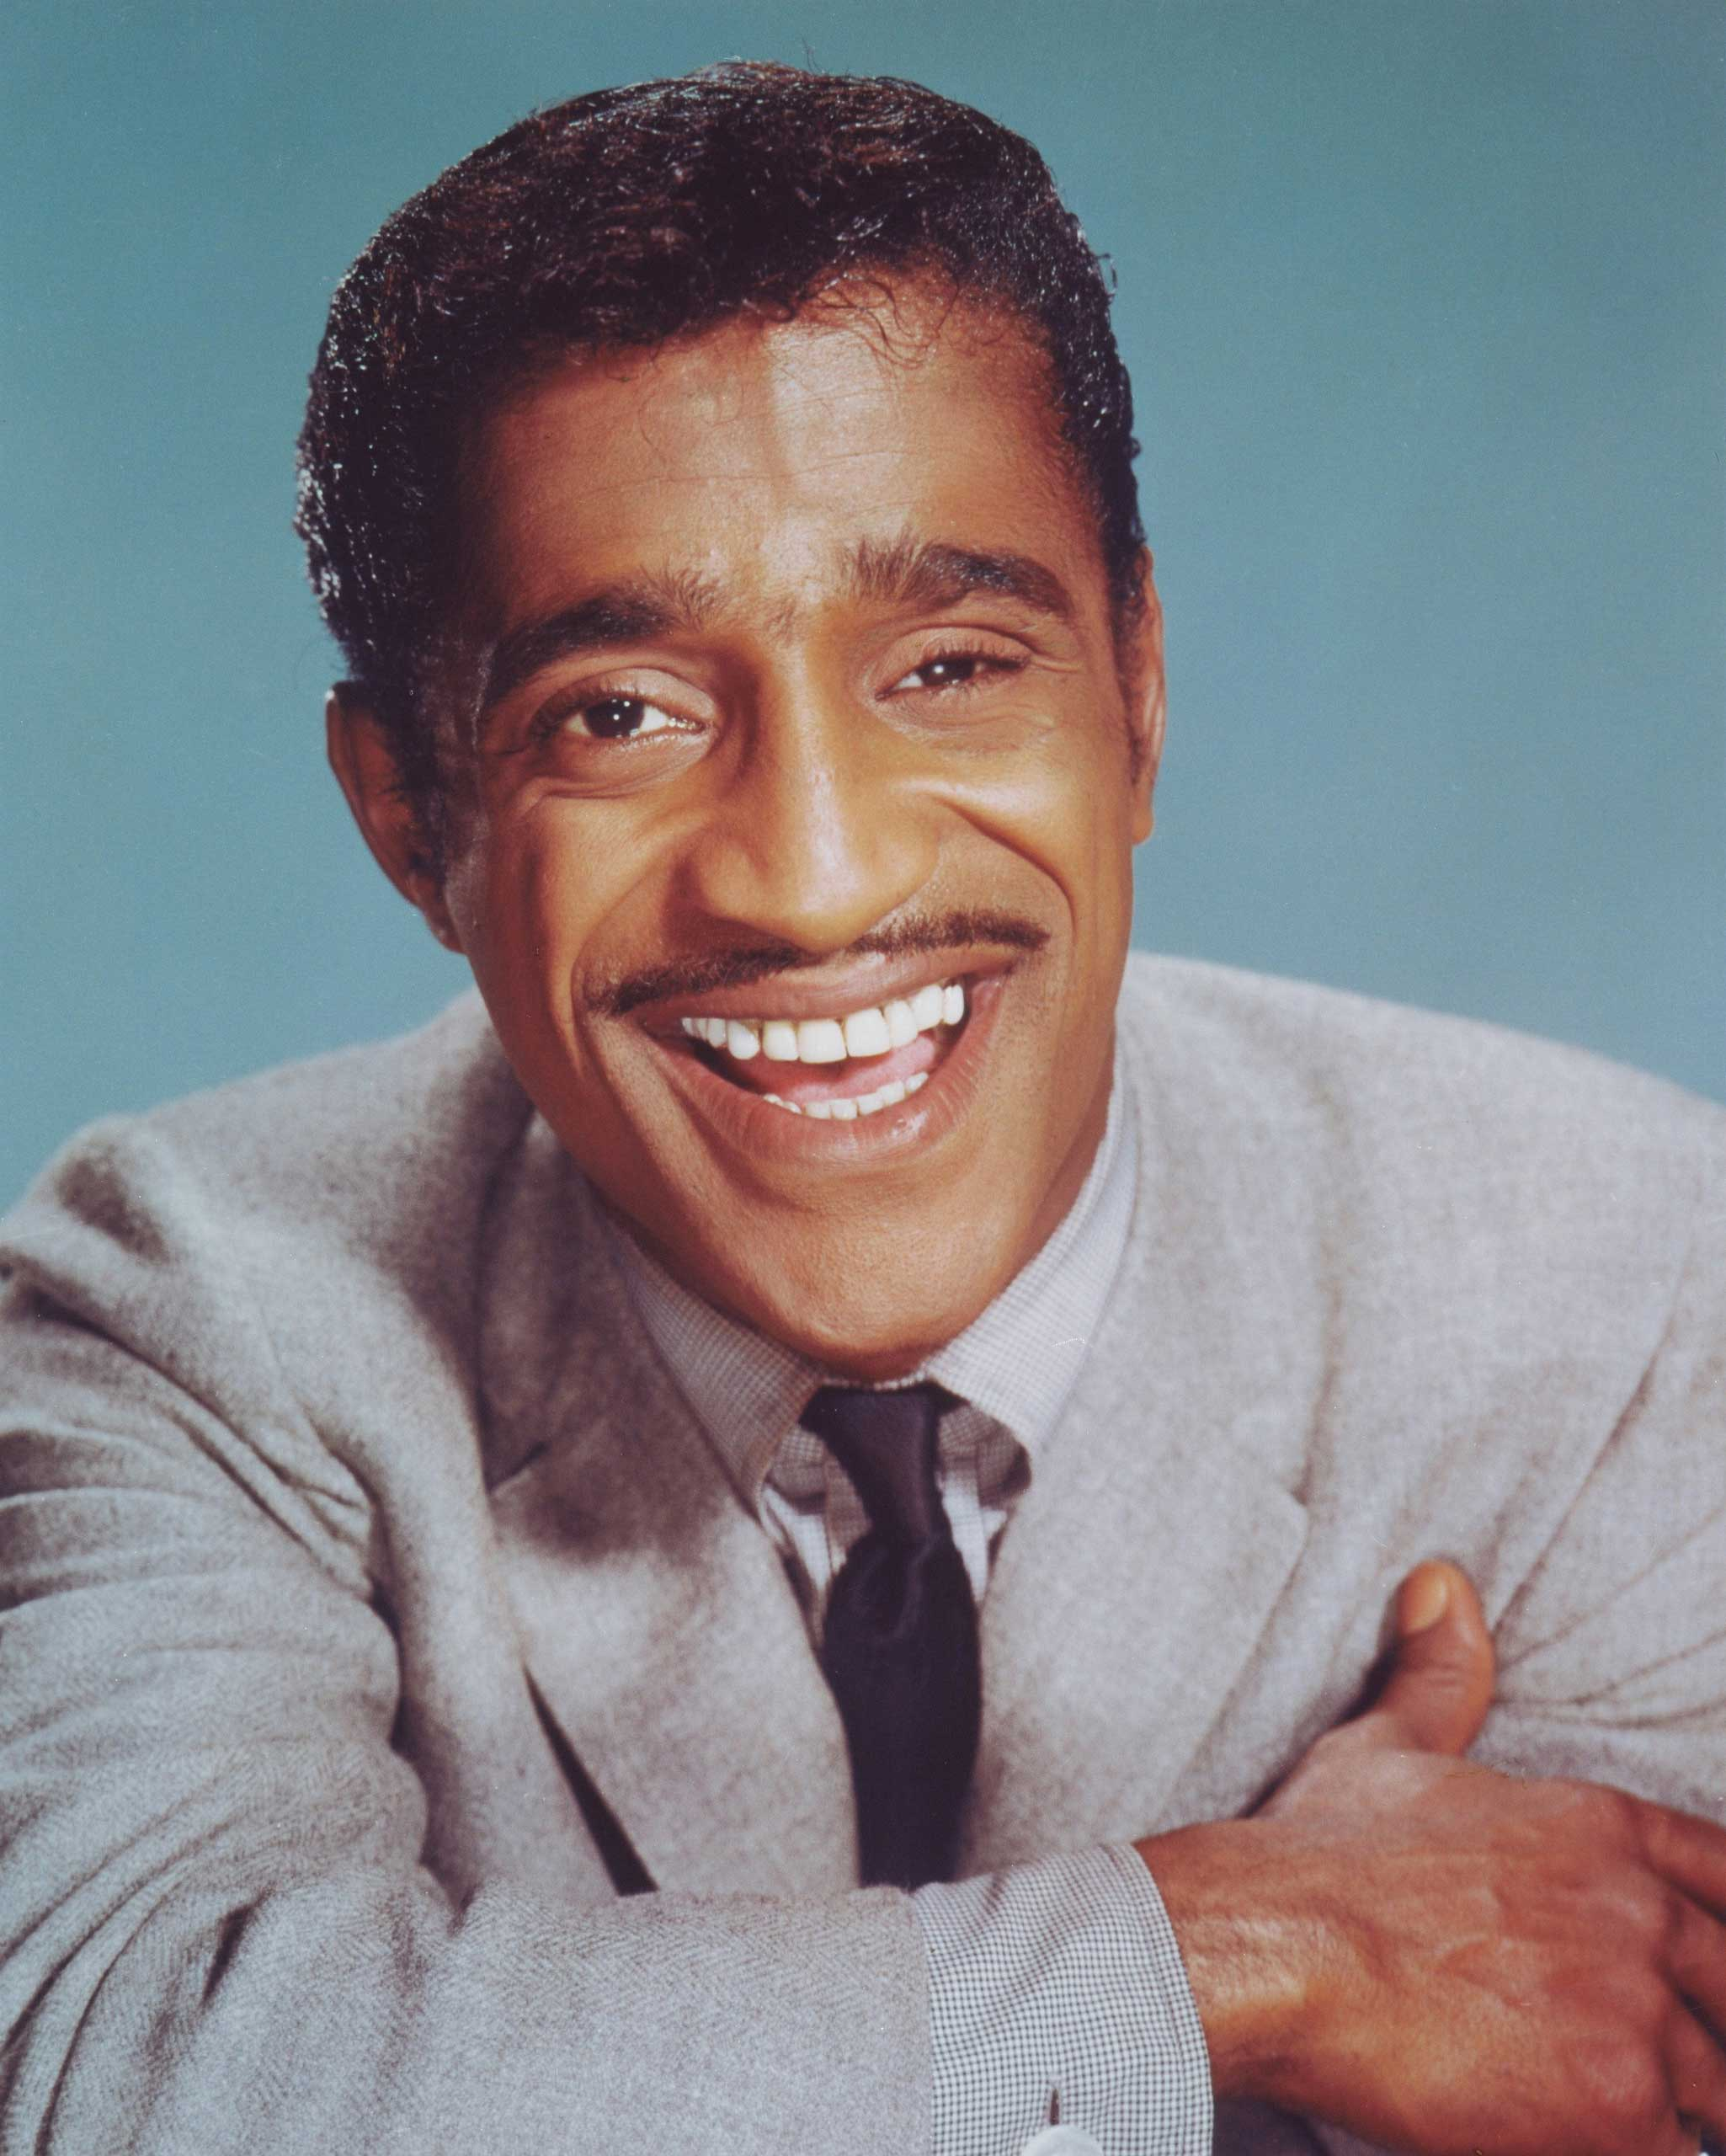 <b>Sammy Davis, Jr.</b> The beloved entertainer was born in Harlem in 1925 to African-American and Afro-Cuban parents.